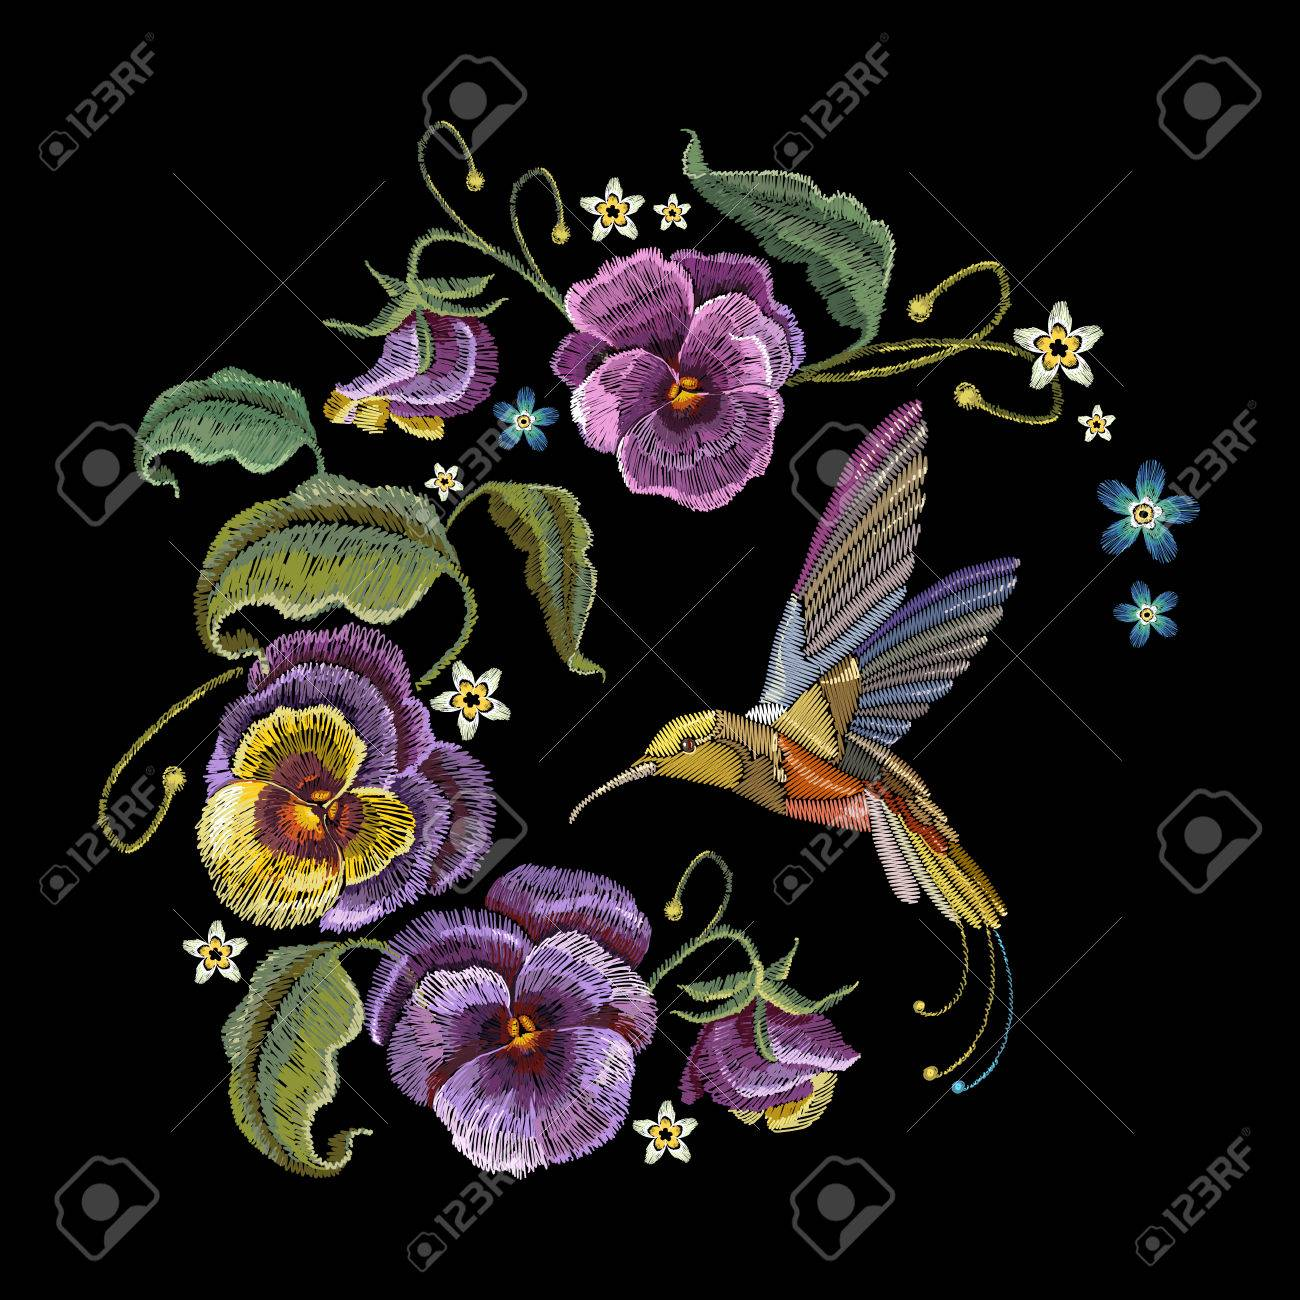 Violets Flower And Humming Bird Embroidery Classical Embroidery Royalty Free Cliparts Vectors And Stock Illustration Image 79998382